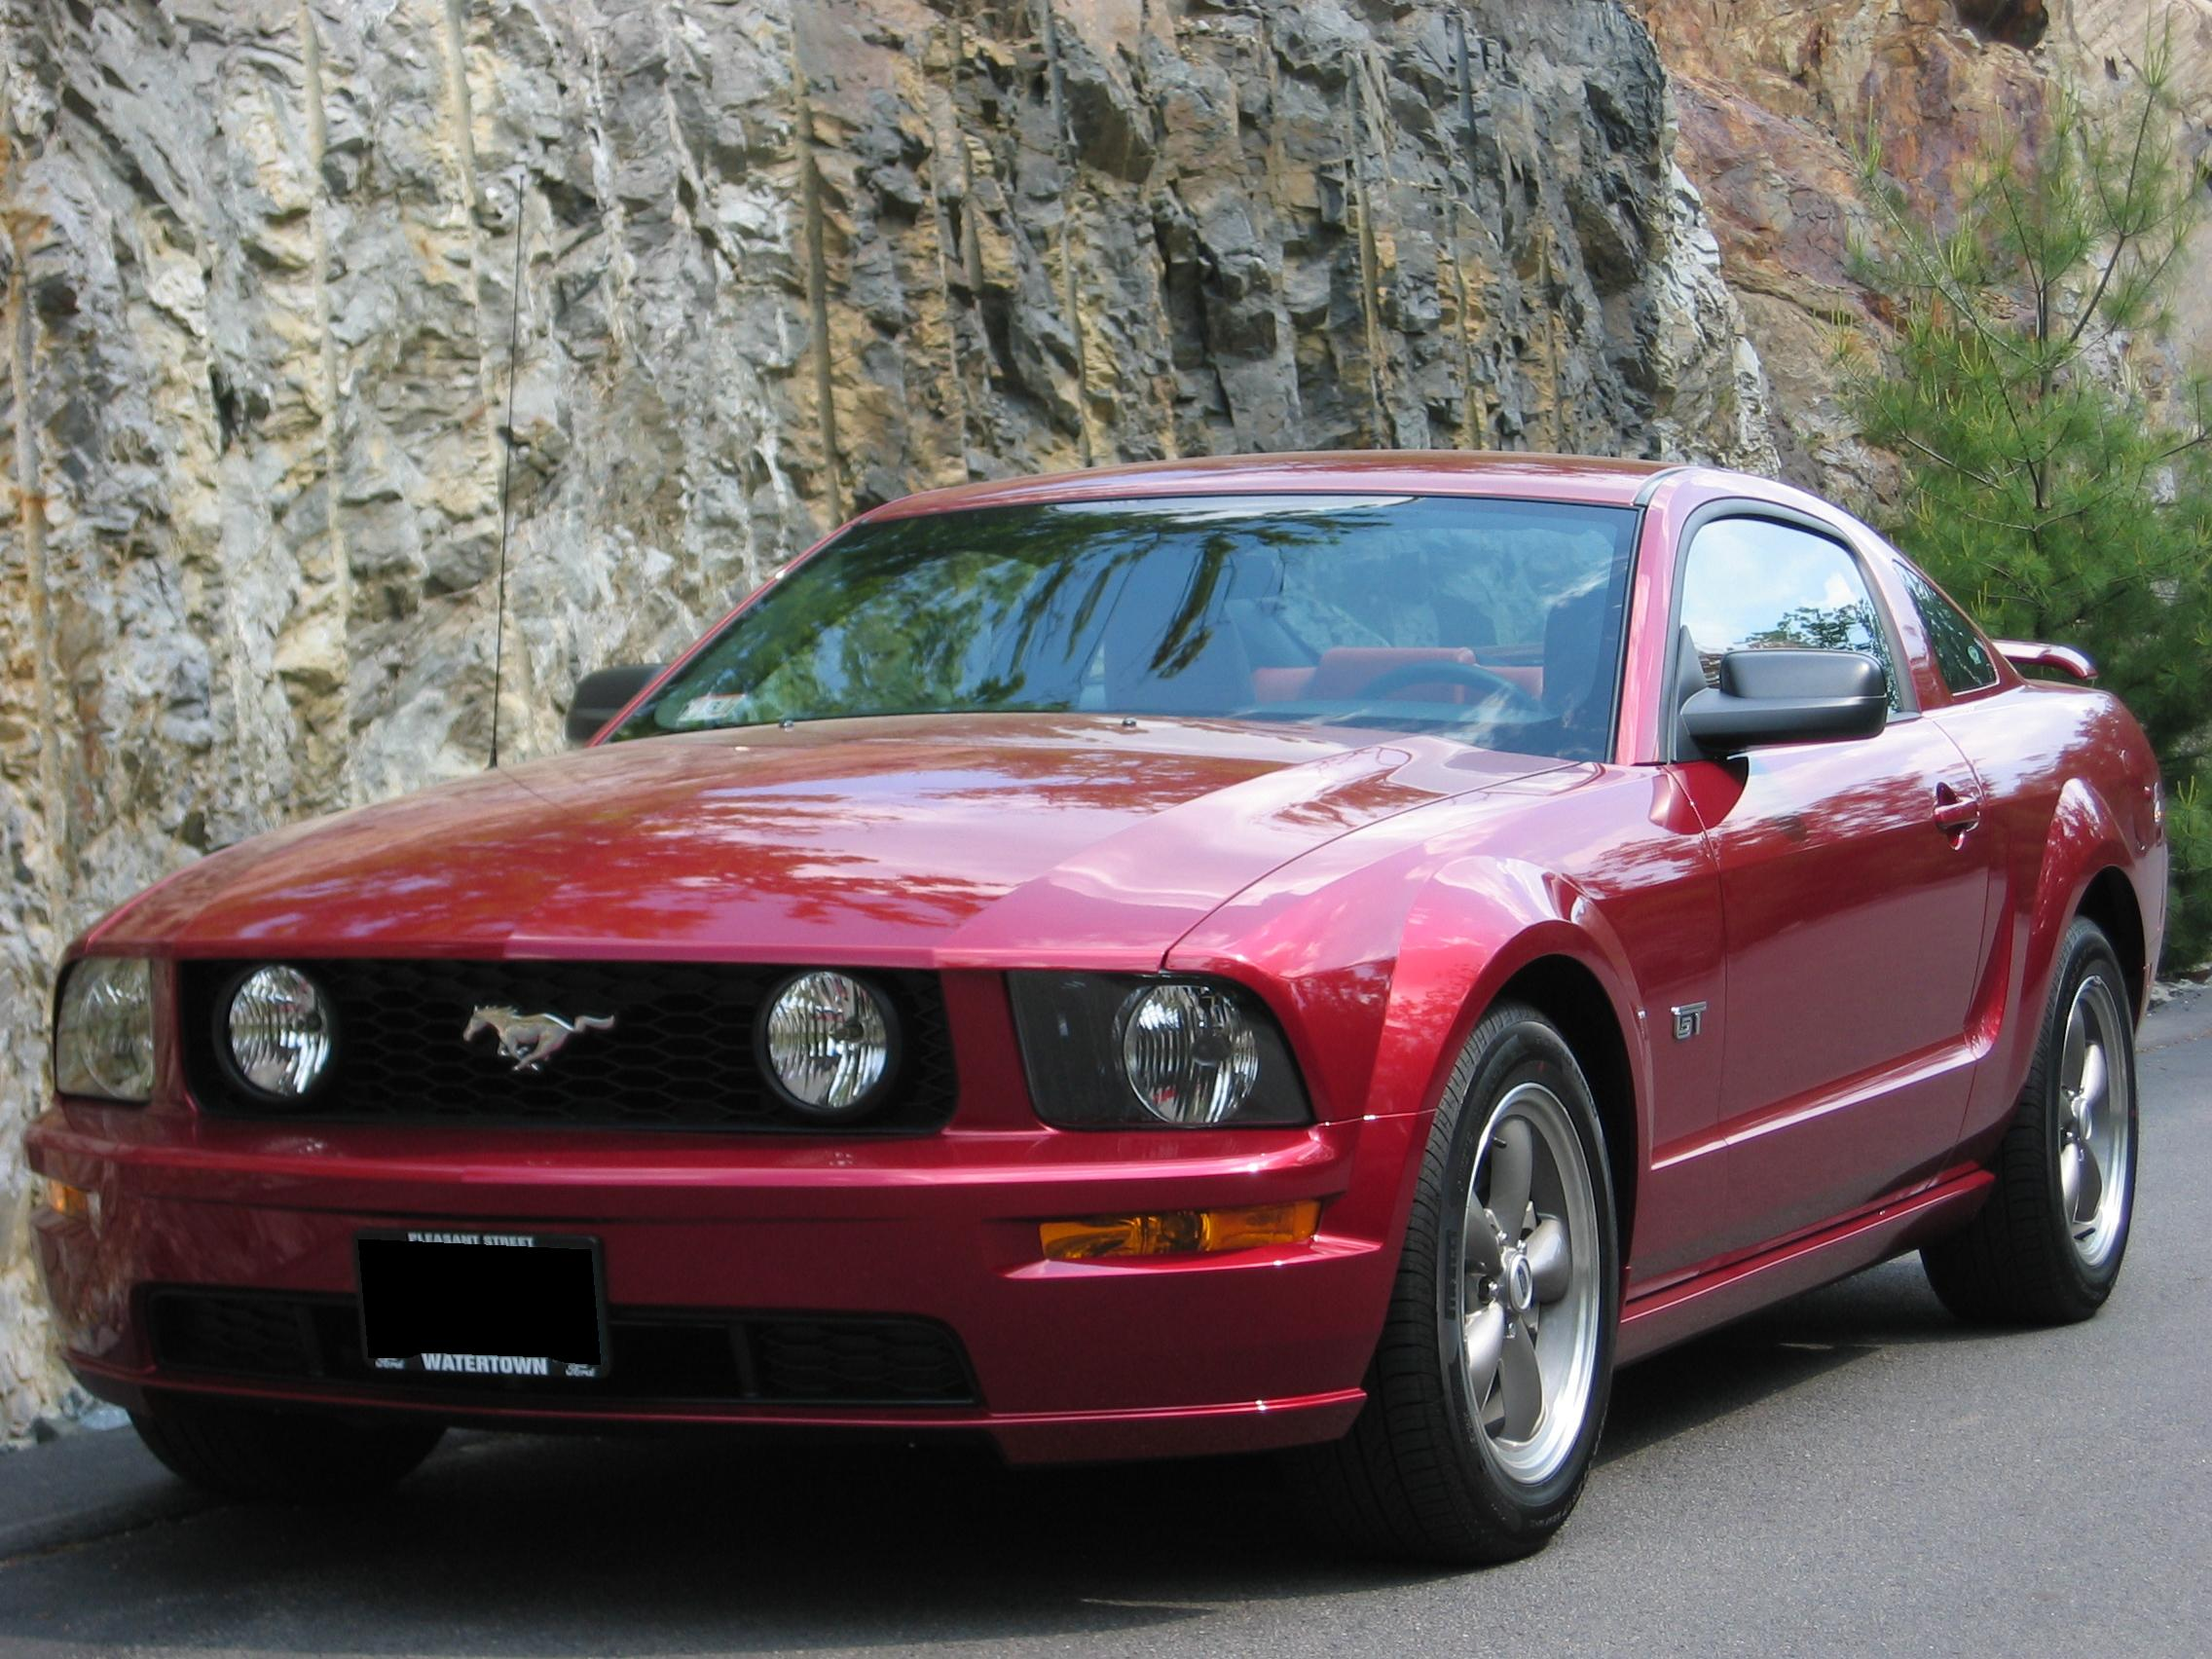 file 2005 ford mustang gt coupe in redfire with bullitt. Black Bedroom Furniture Sets. Home Design Ideas